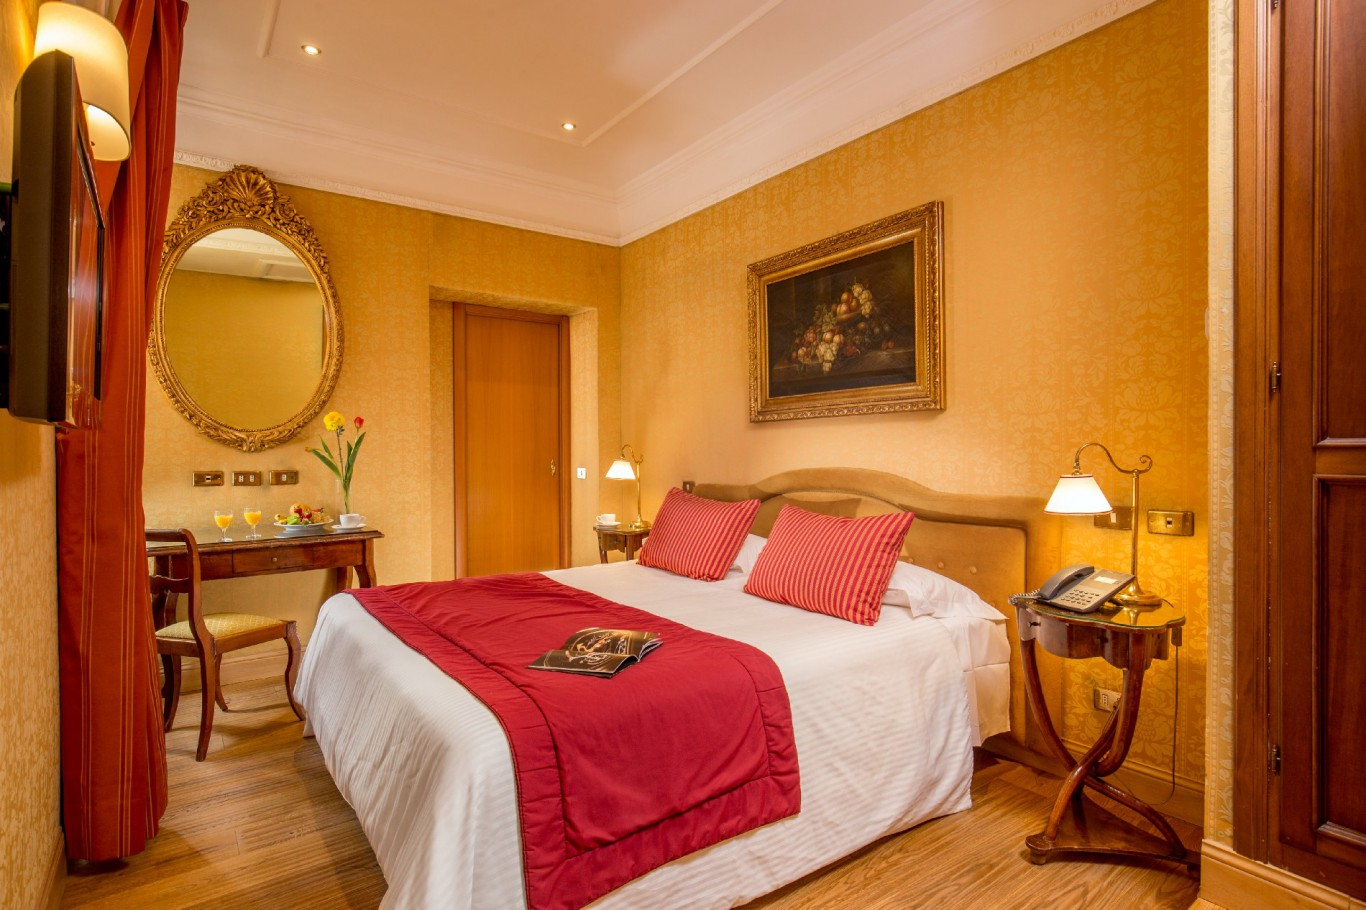 Hotel-Morgana-Rome-deluxe-room-